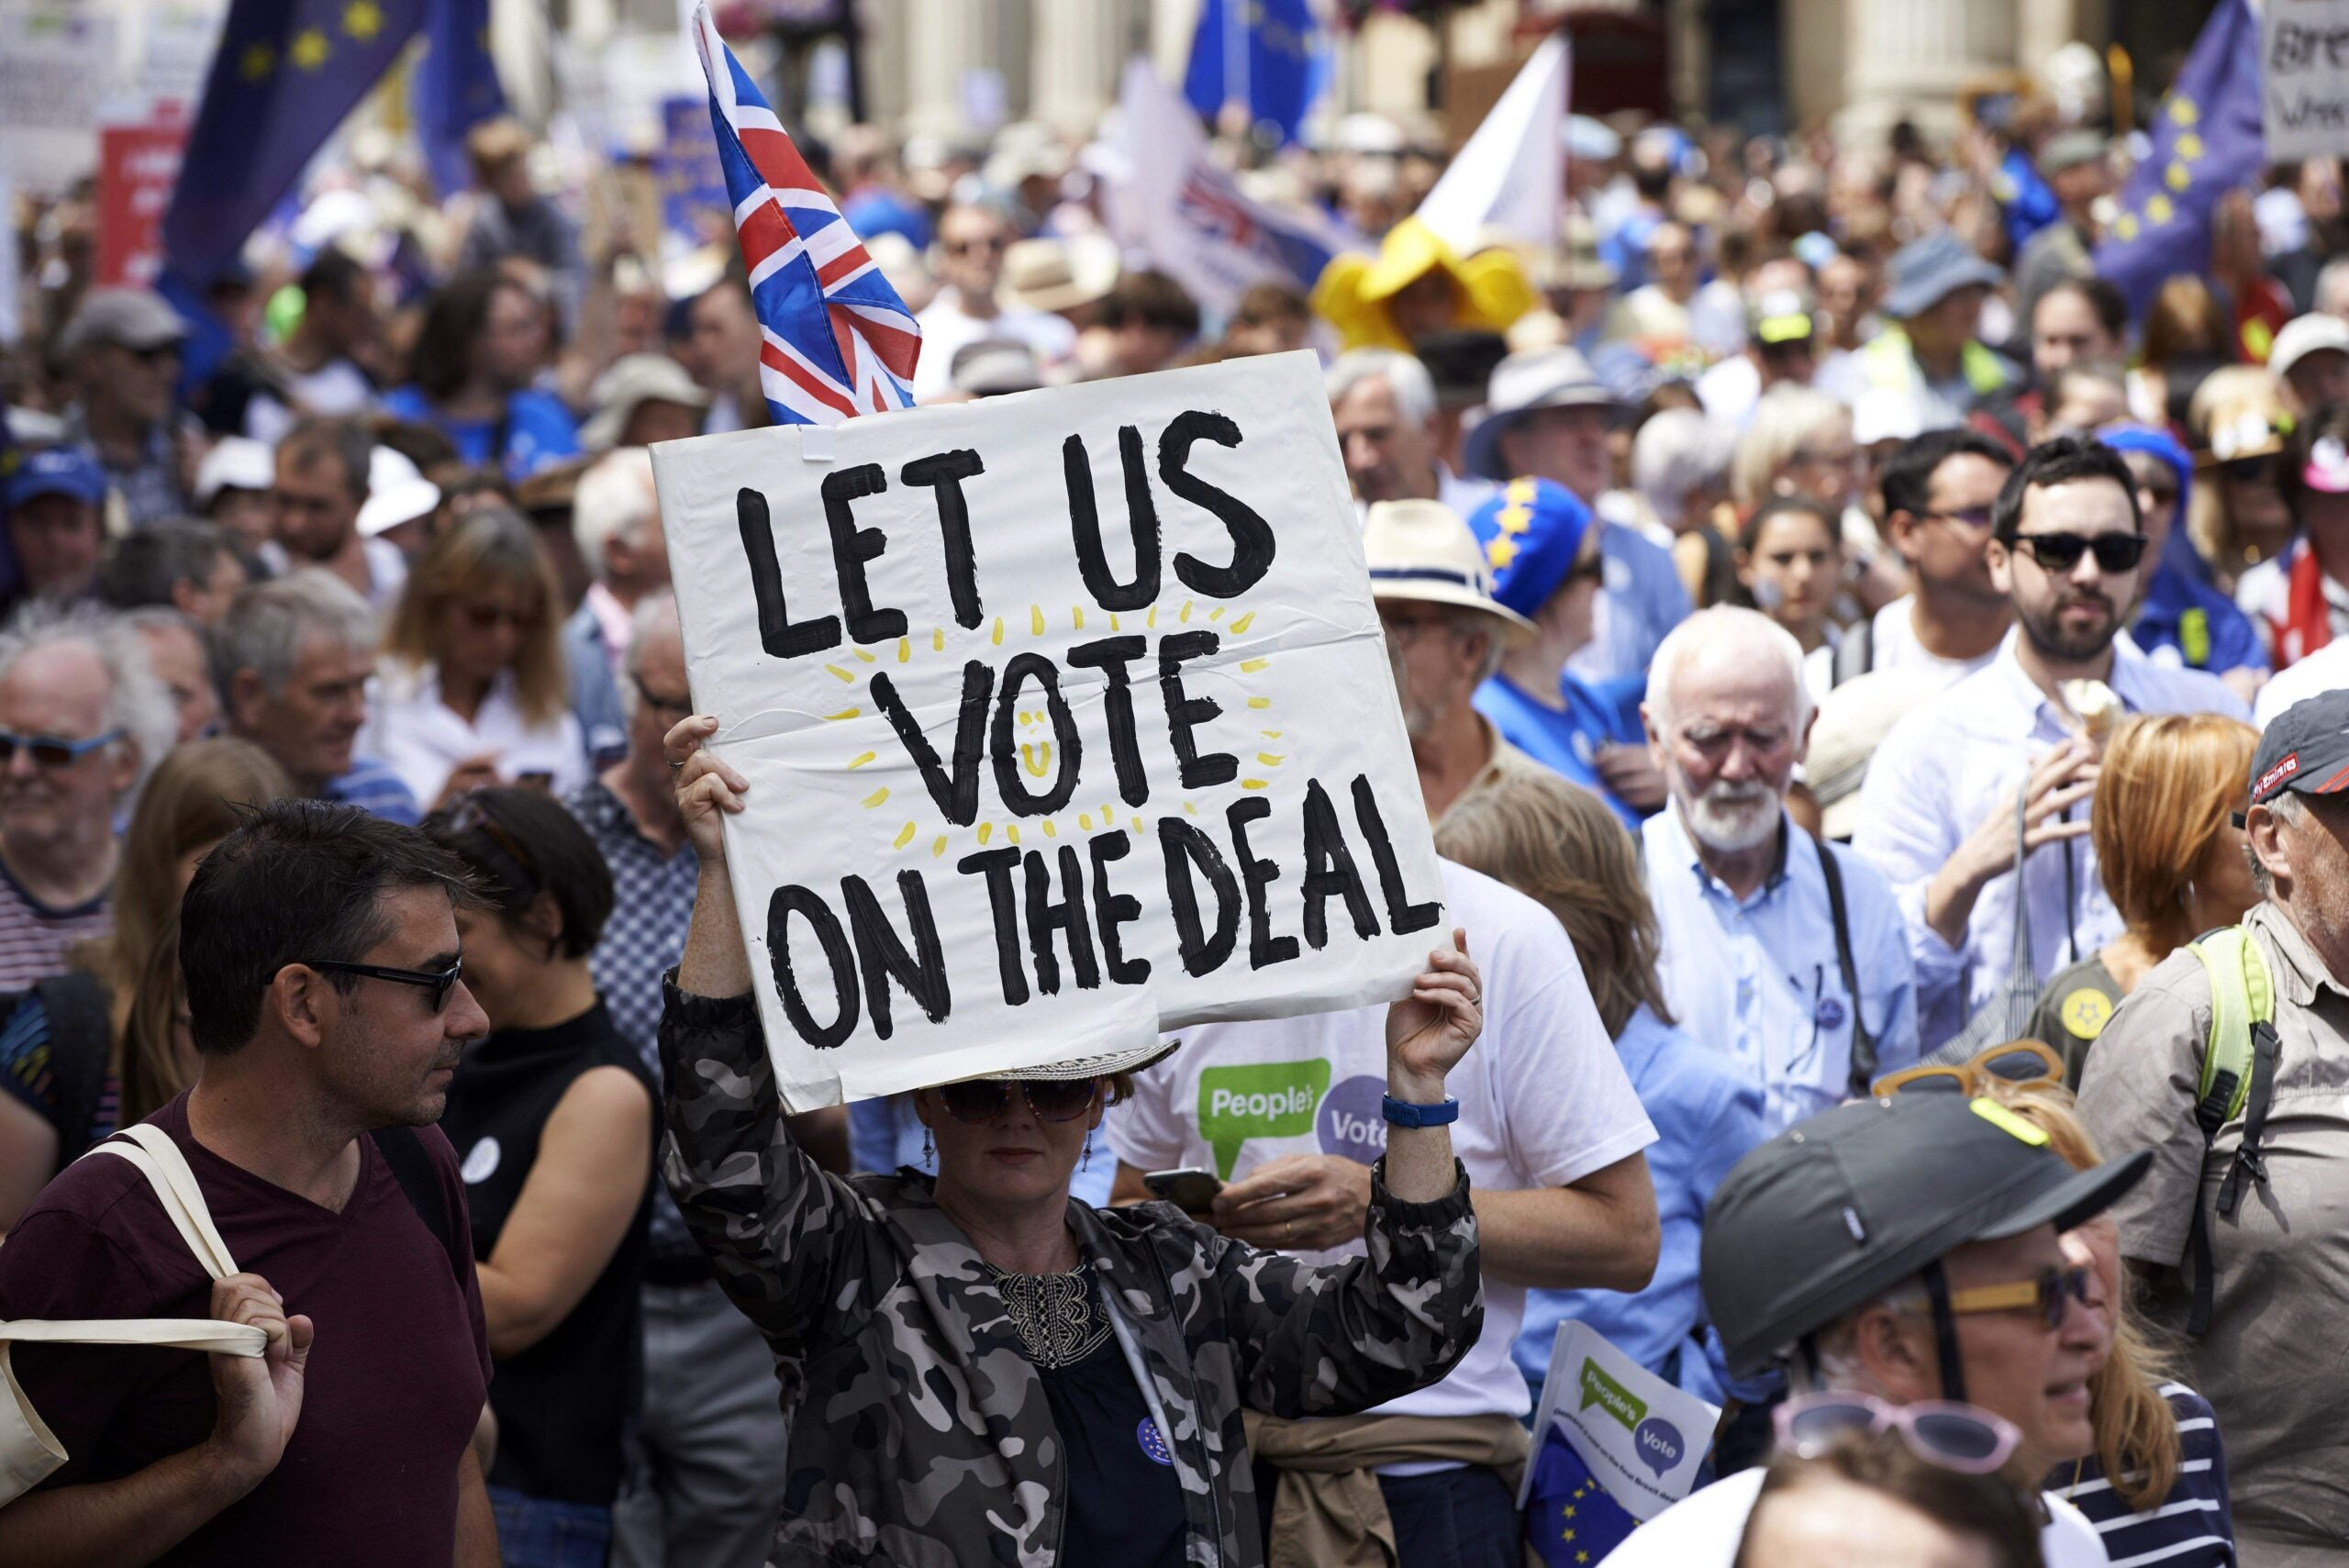 Get heard on the People's Vote march – but remember those who were only heard once